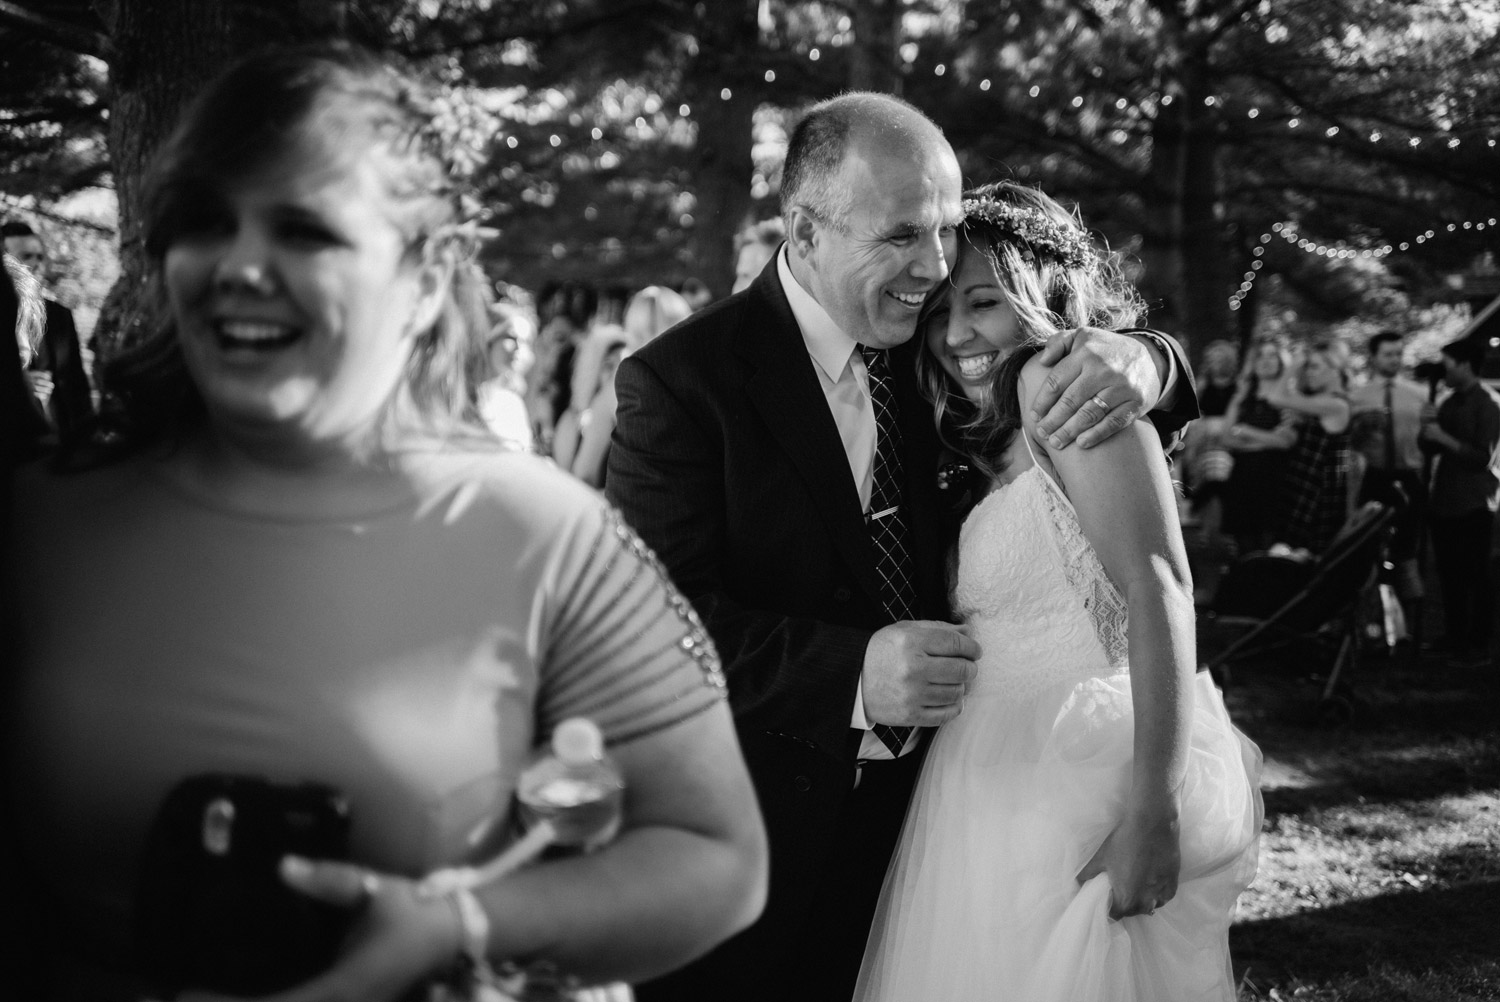 Minnetonka Orchards wedding photography by geneoh photography